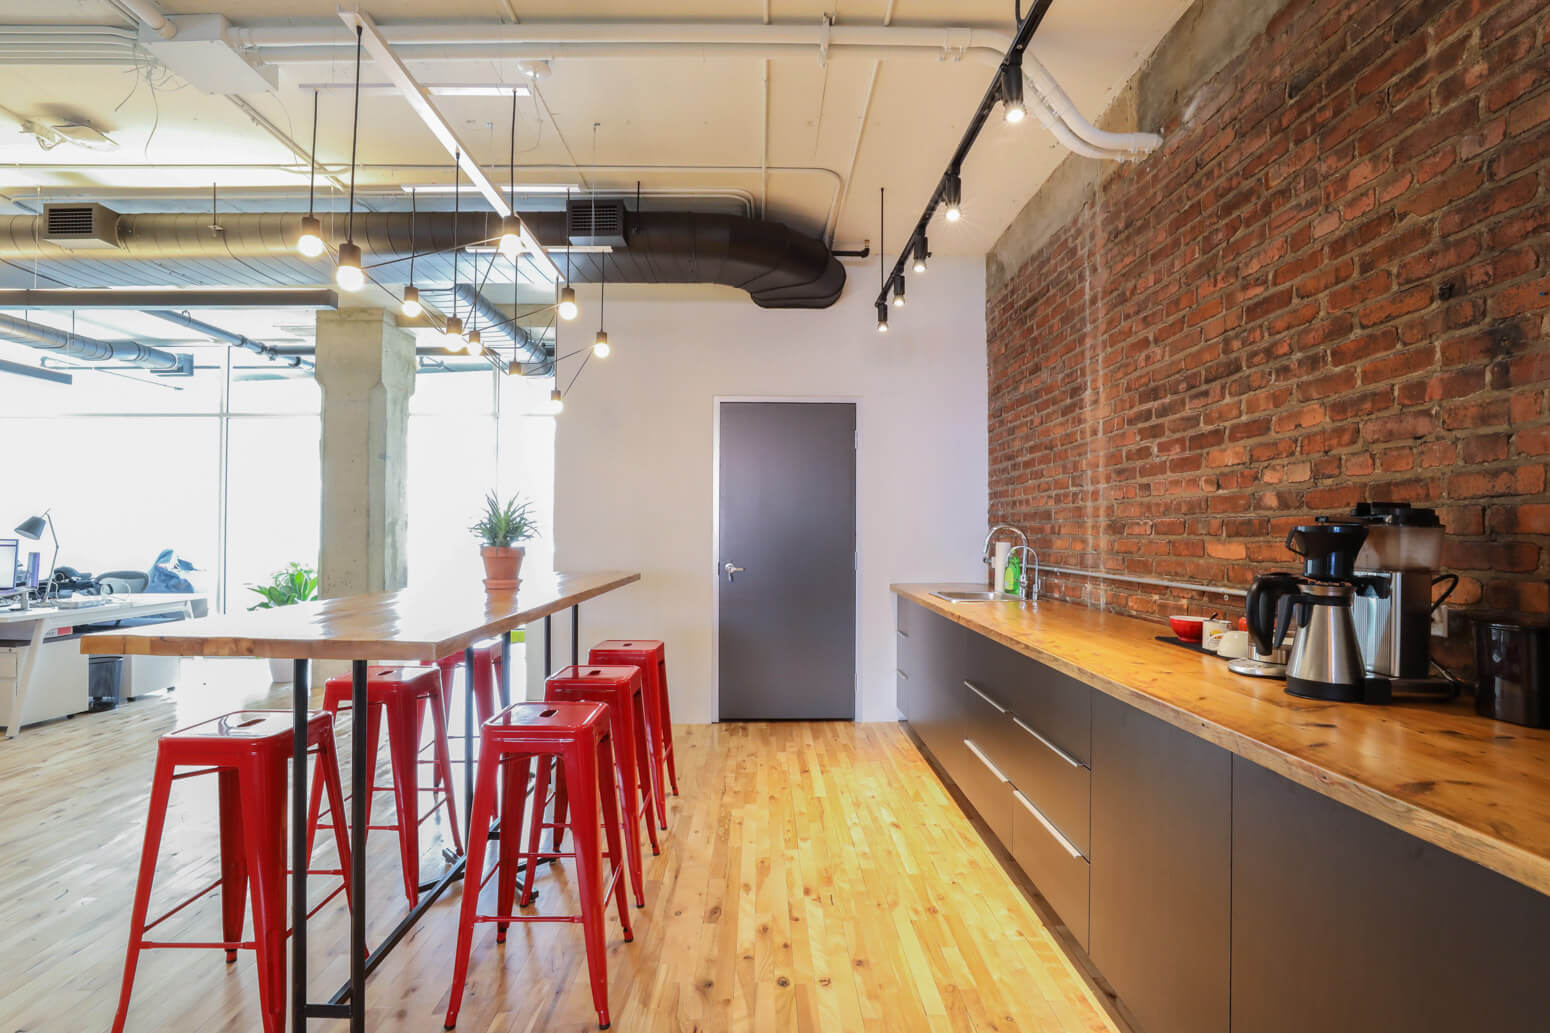 Shutterstock Montreal Office Killer Spaces-2